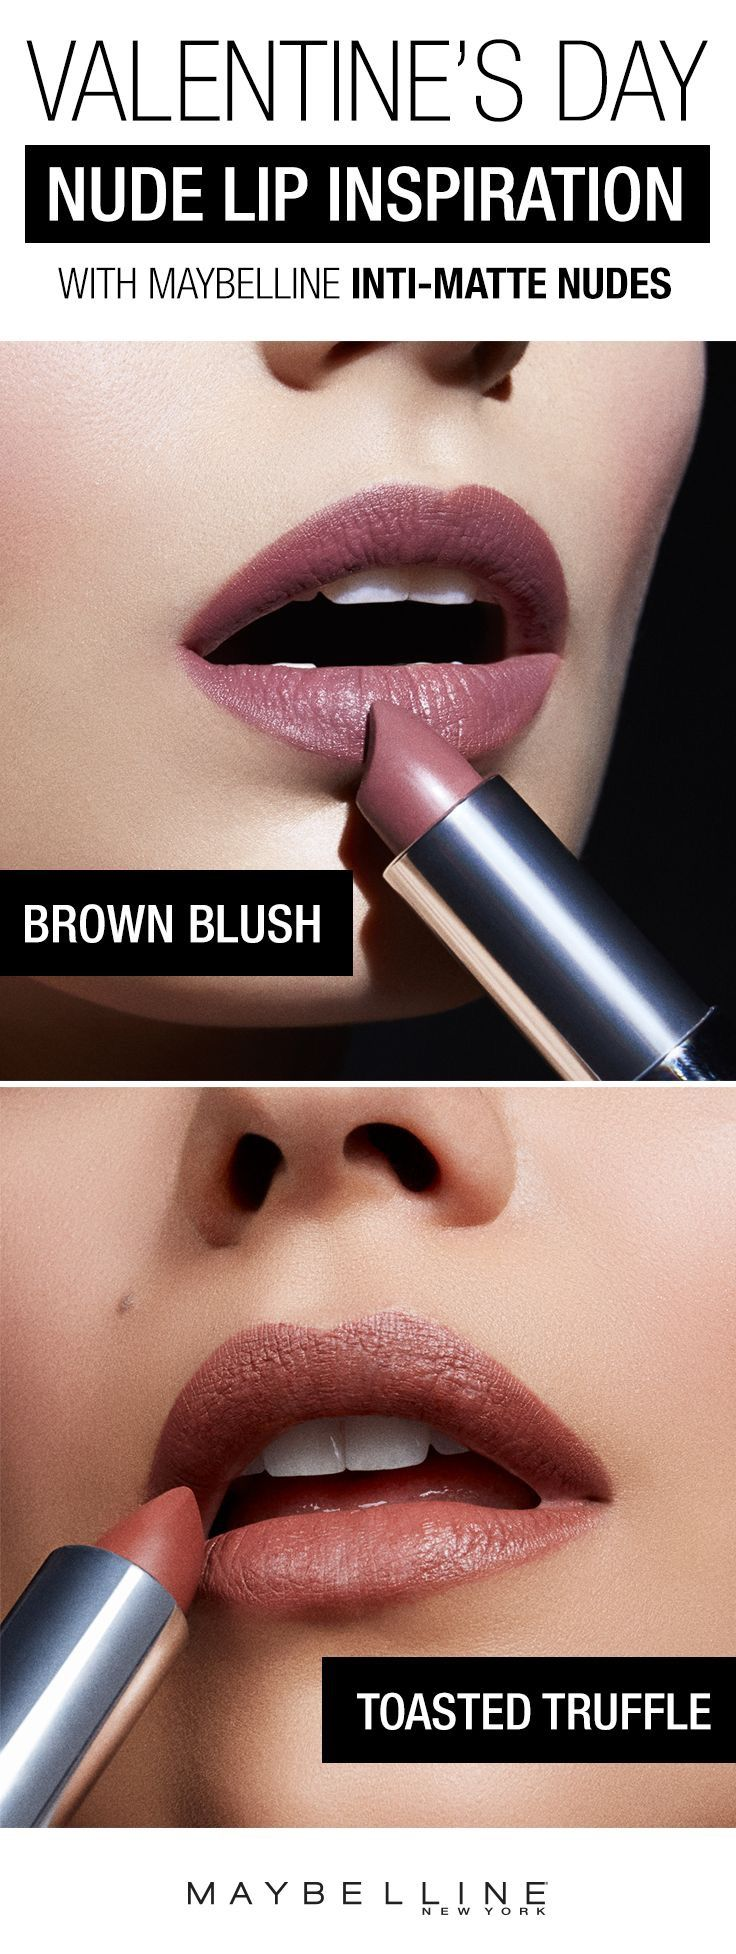 278 best makeup images on pinterest | beauty products, eyes and